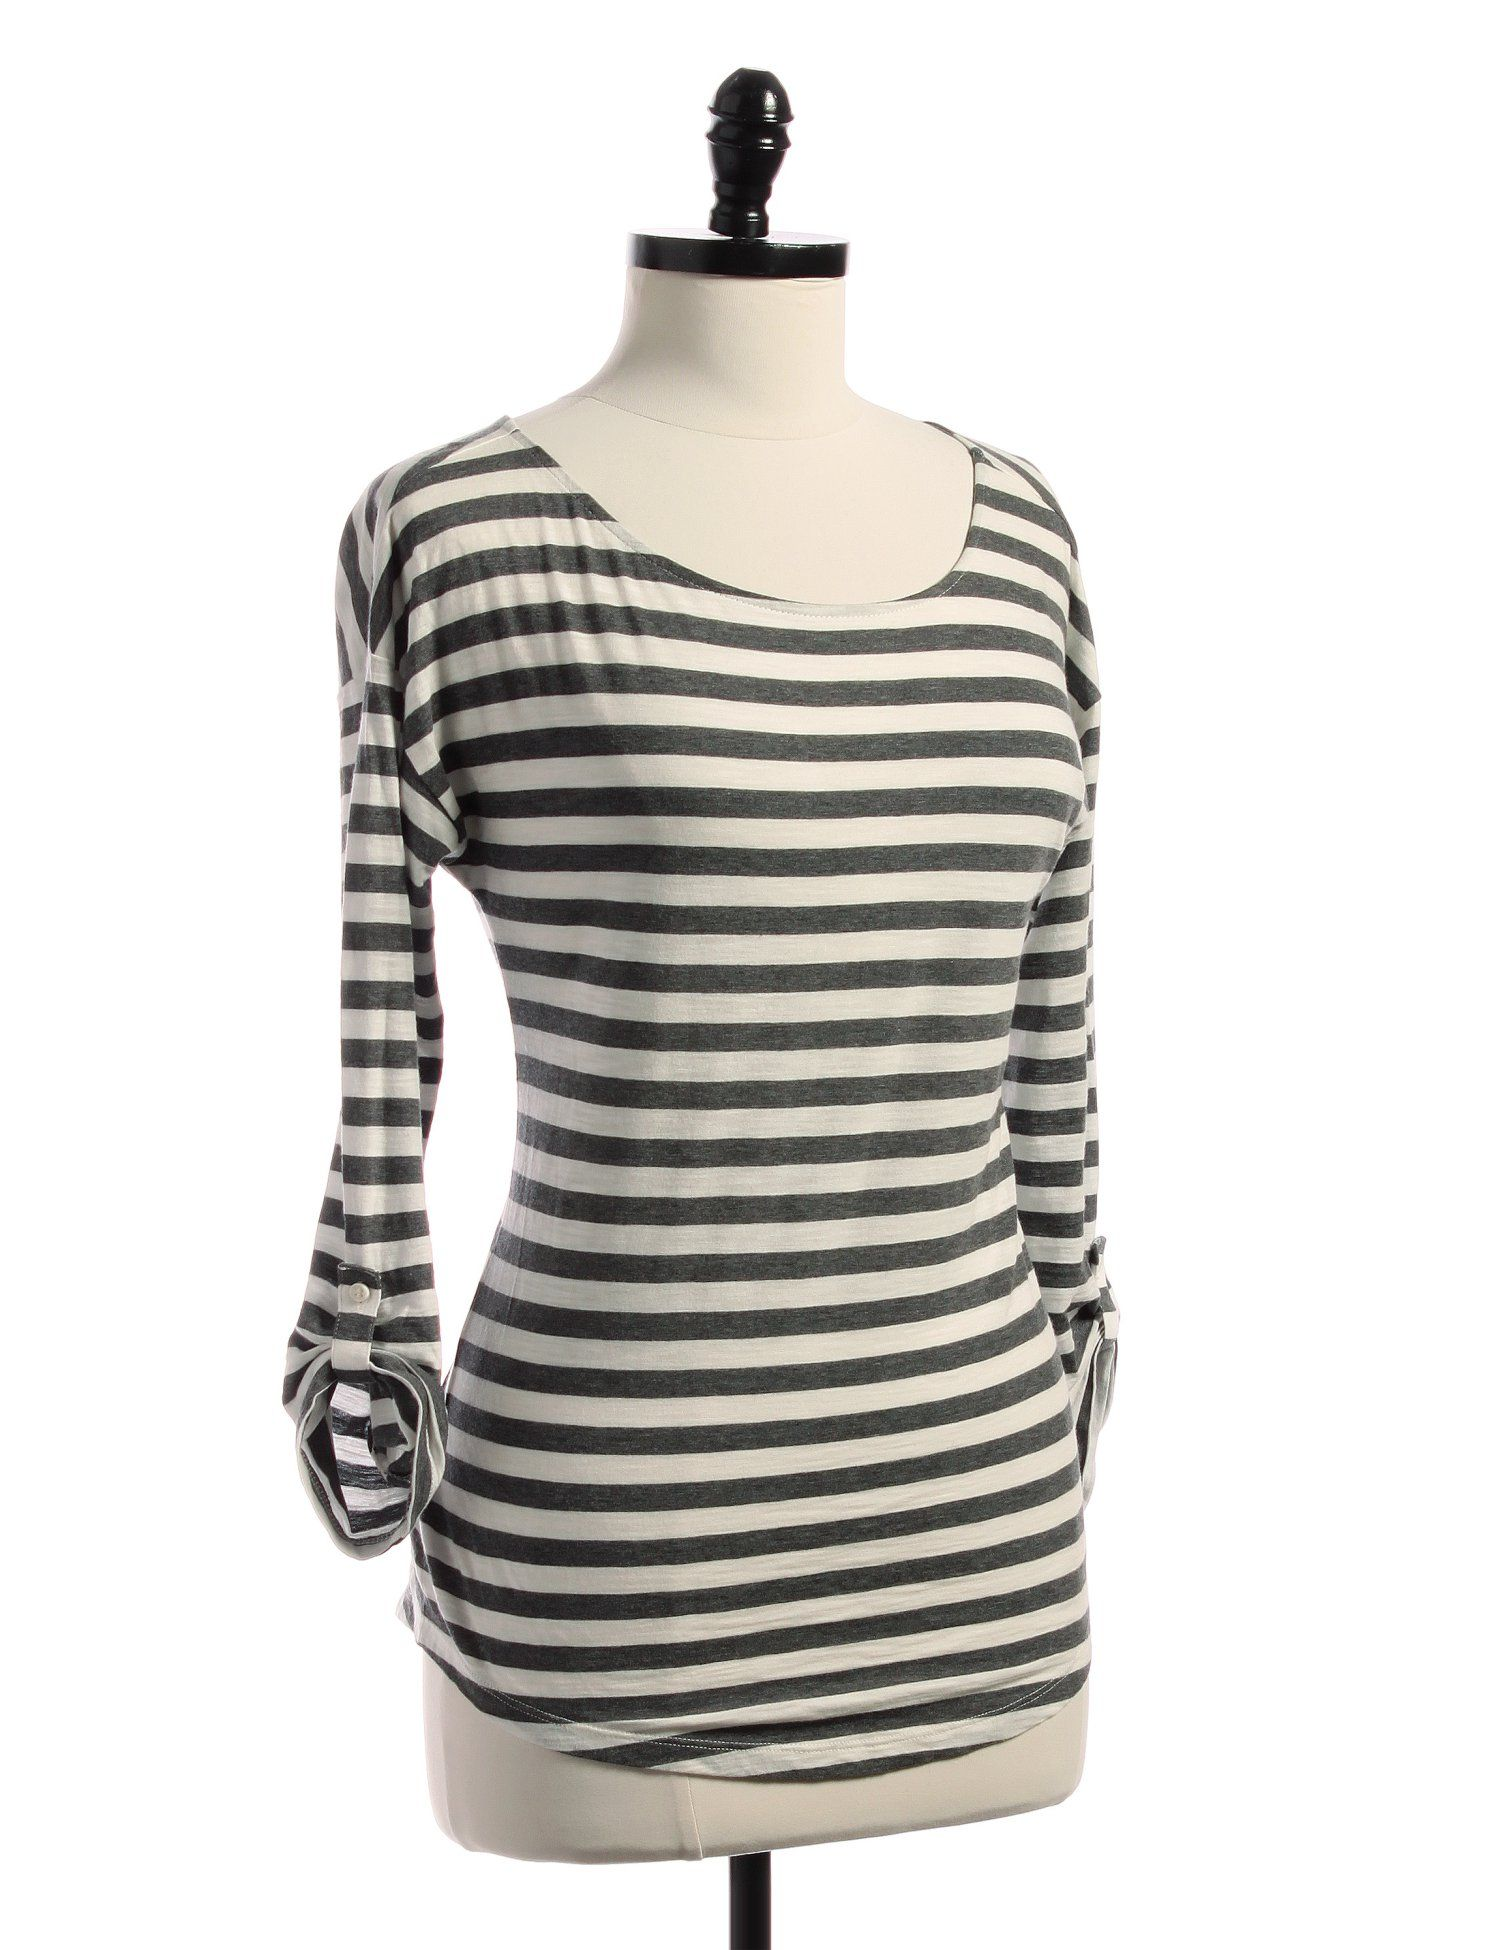 Ann Taylor Loft Grey Striped Blouse (S)